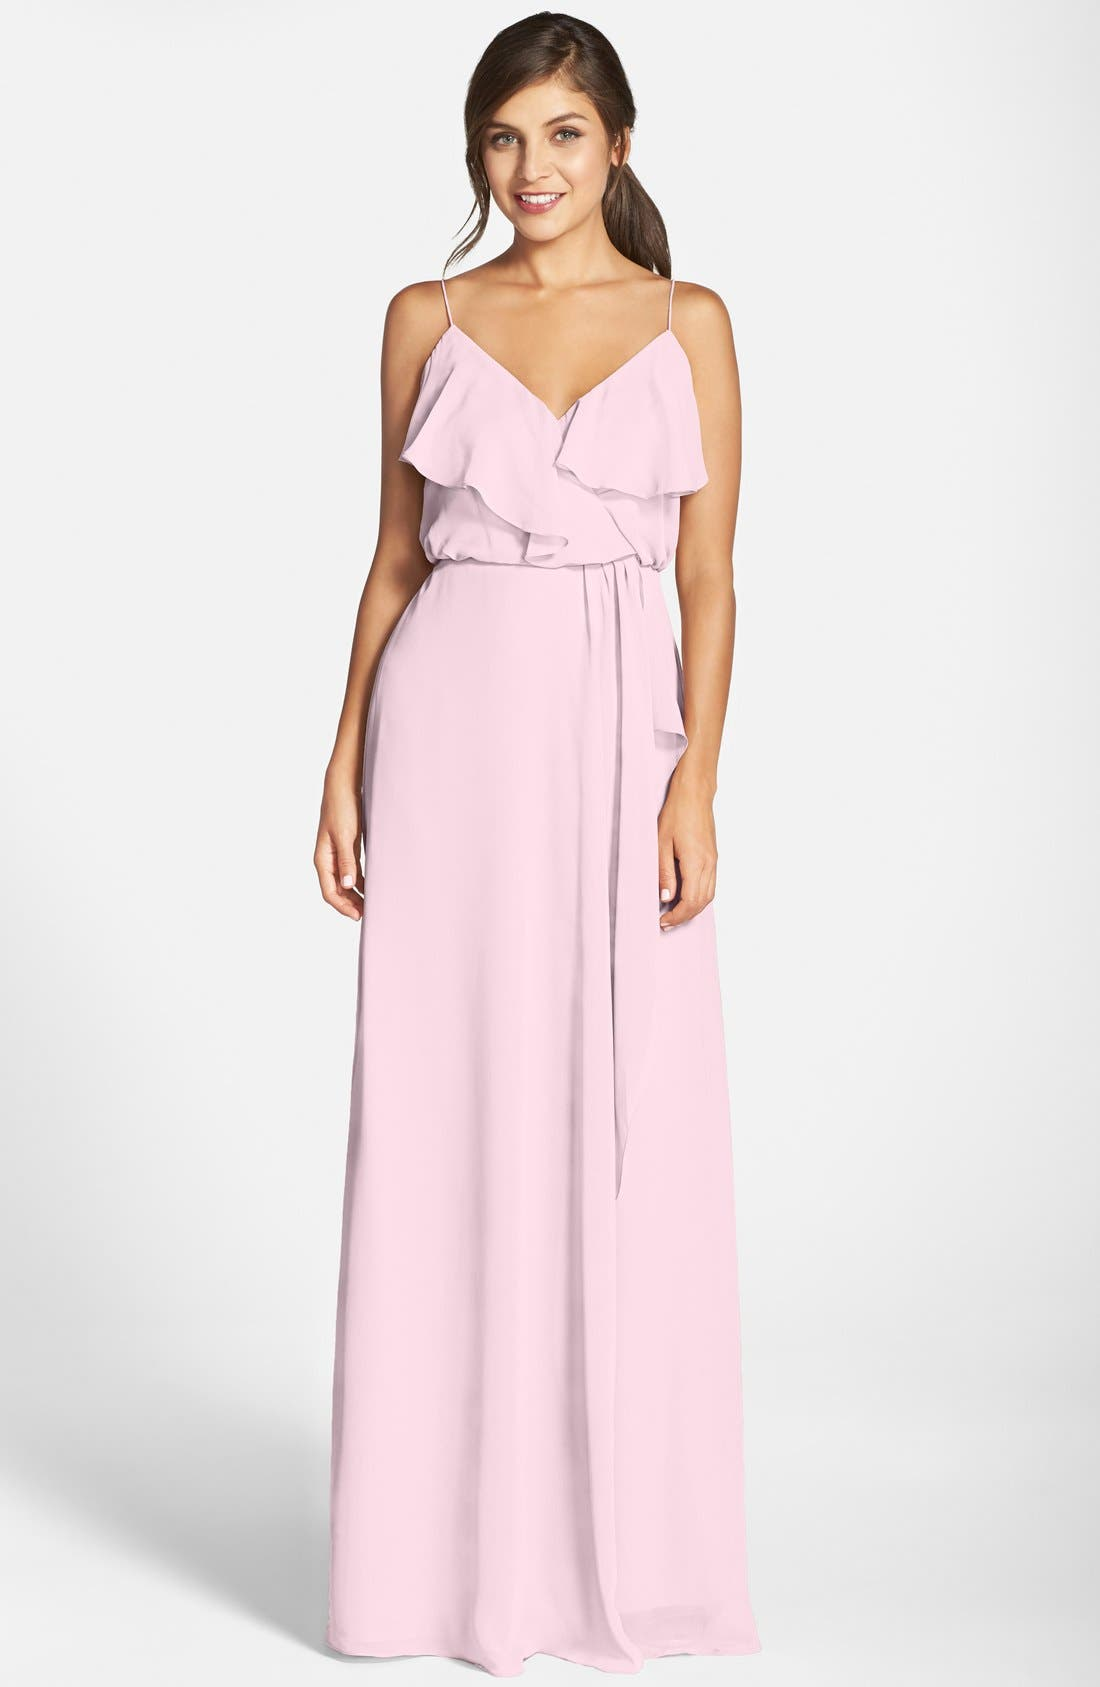 'Drew' Ruffle Front Chiffon Gown,                             Main thumbnail 11, color,